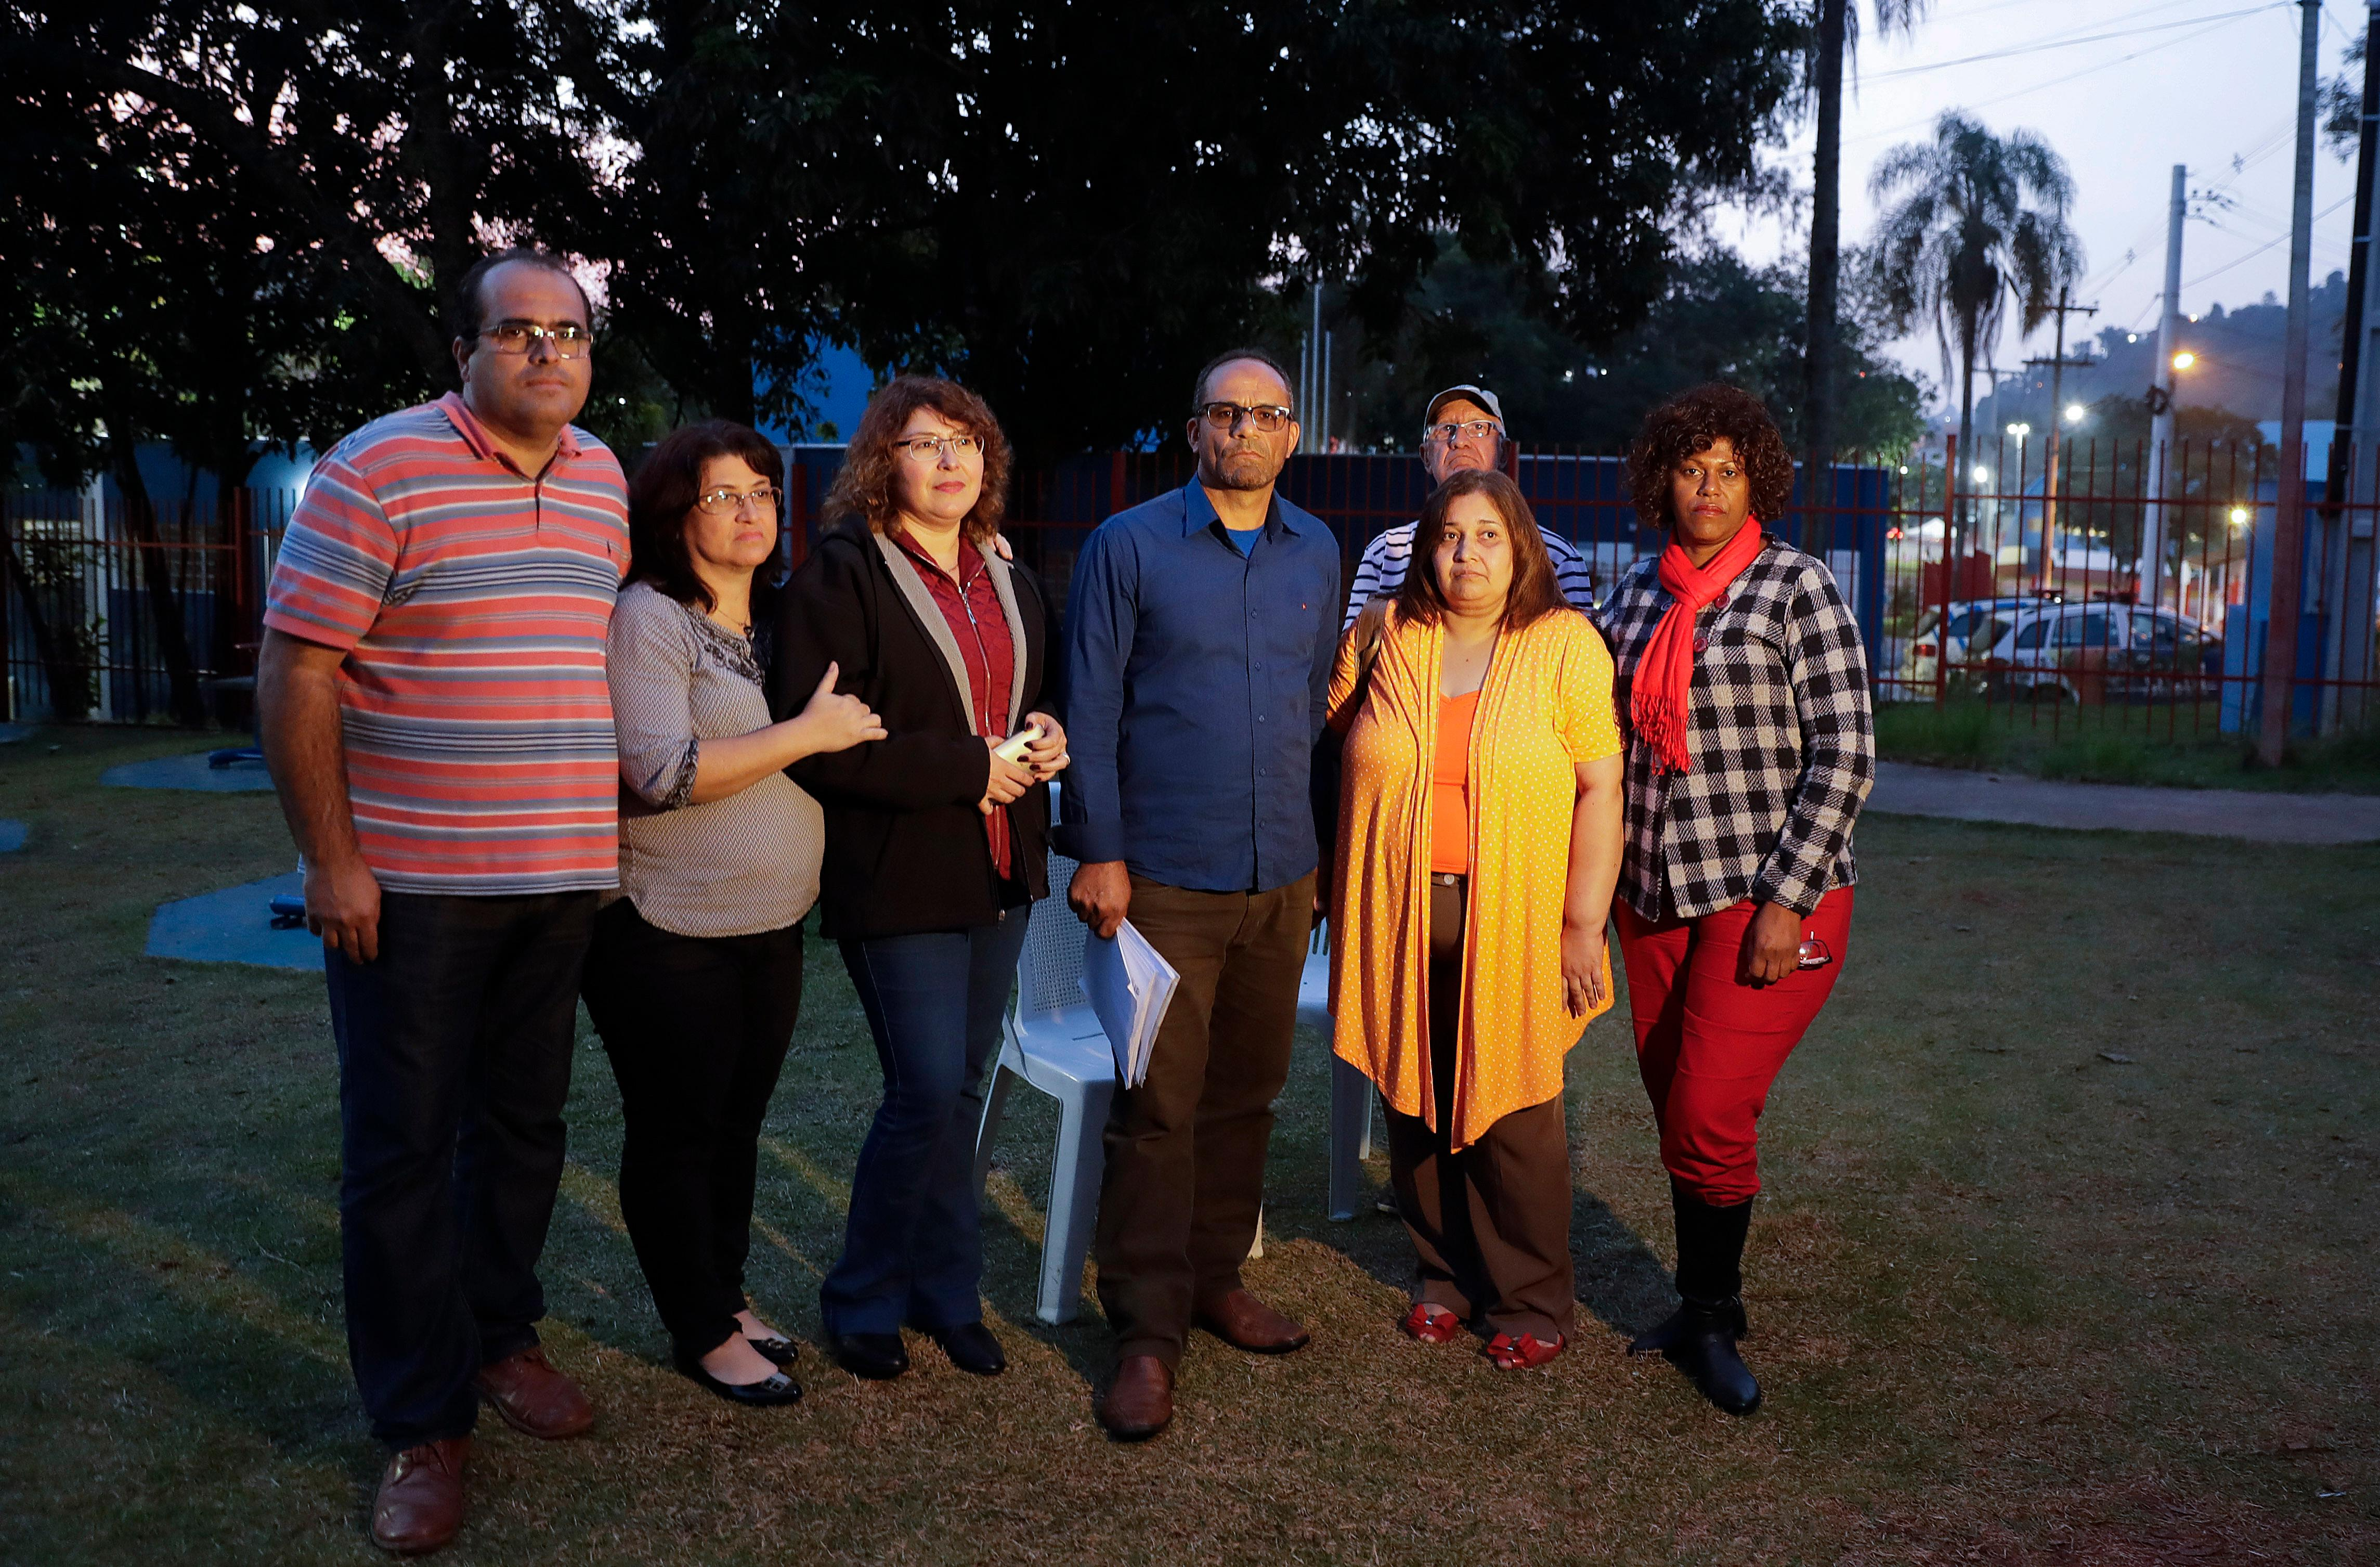 FILE - In this Sunday, May 28, 2017 photo, former members of the Rhema Community Evangelical Ministry, from left, Marcelo Galvao Machado, Tania Machado, Naara Abe, Flavio Correa de Souza, Carlos, Rosangela Ferreira Souza, and Maria Reis, stand in a park in Franco da Rocha, Brazil, in the greater Sao Paulo area. Over the course of two decades, the U.S.-based Word of Faith Fellowship mother church took command of theirs and another congregation in Brazil, applying a strict interpretation of the Bible and enforcing it through rigorous controls and physical punishment, The Associated Press has found. (AP Photo/Andre Penner)